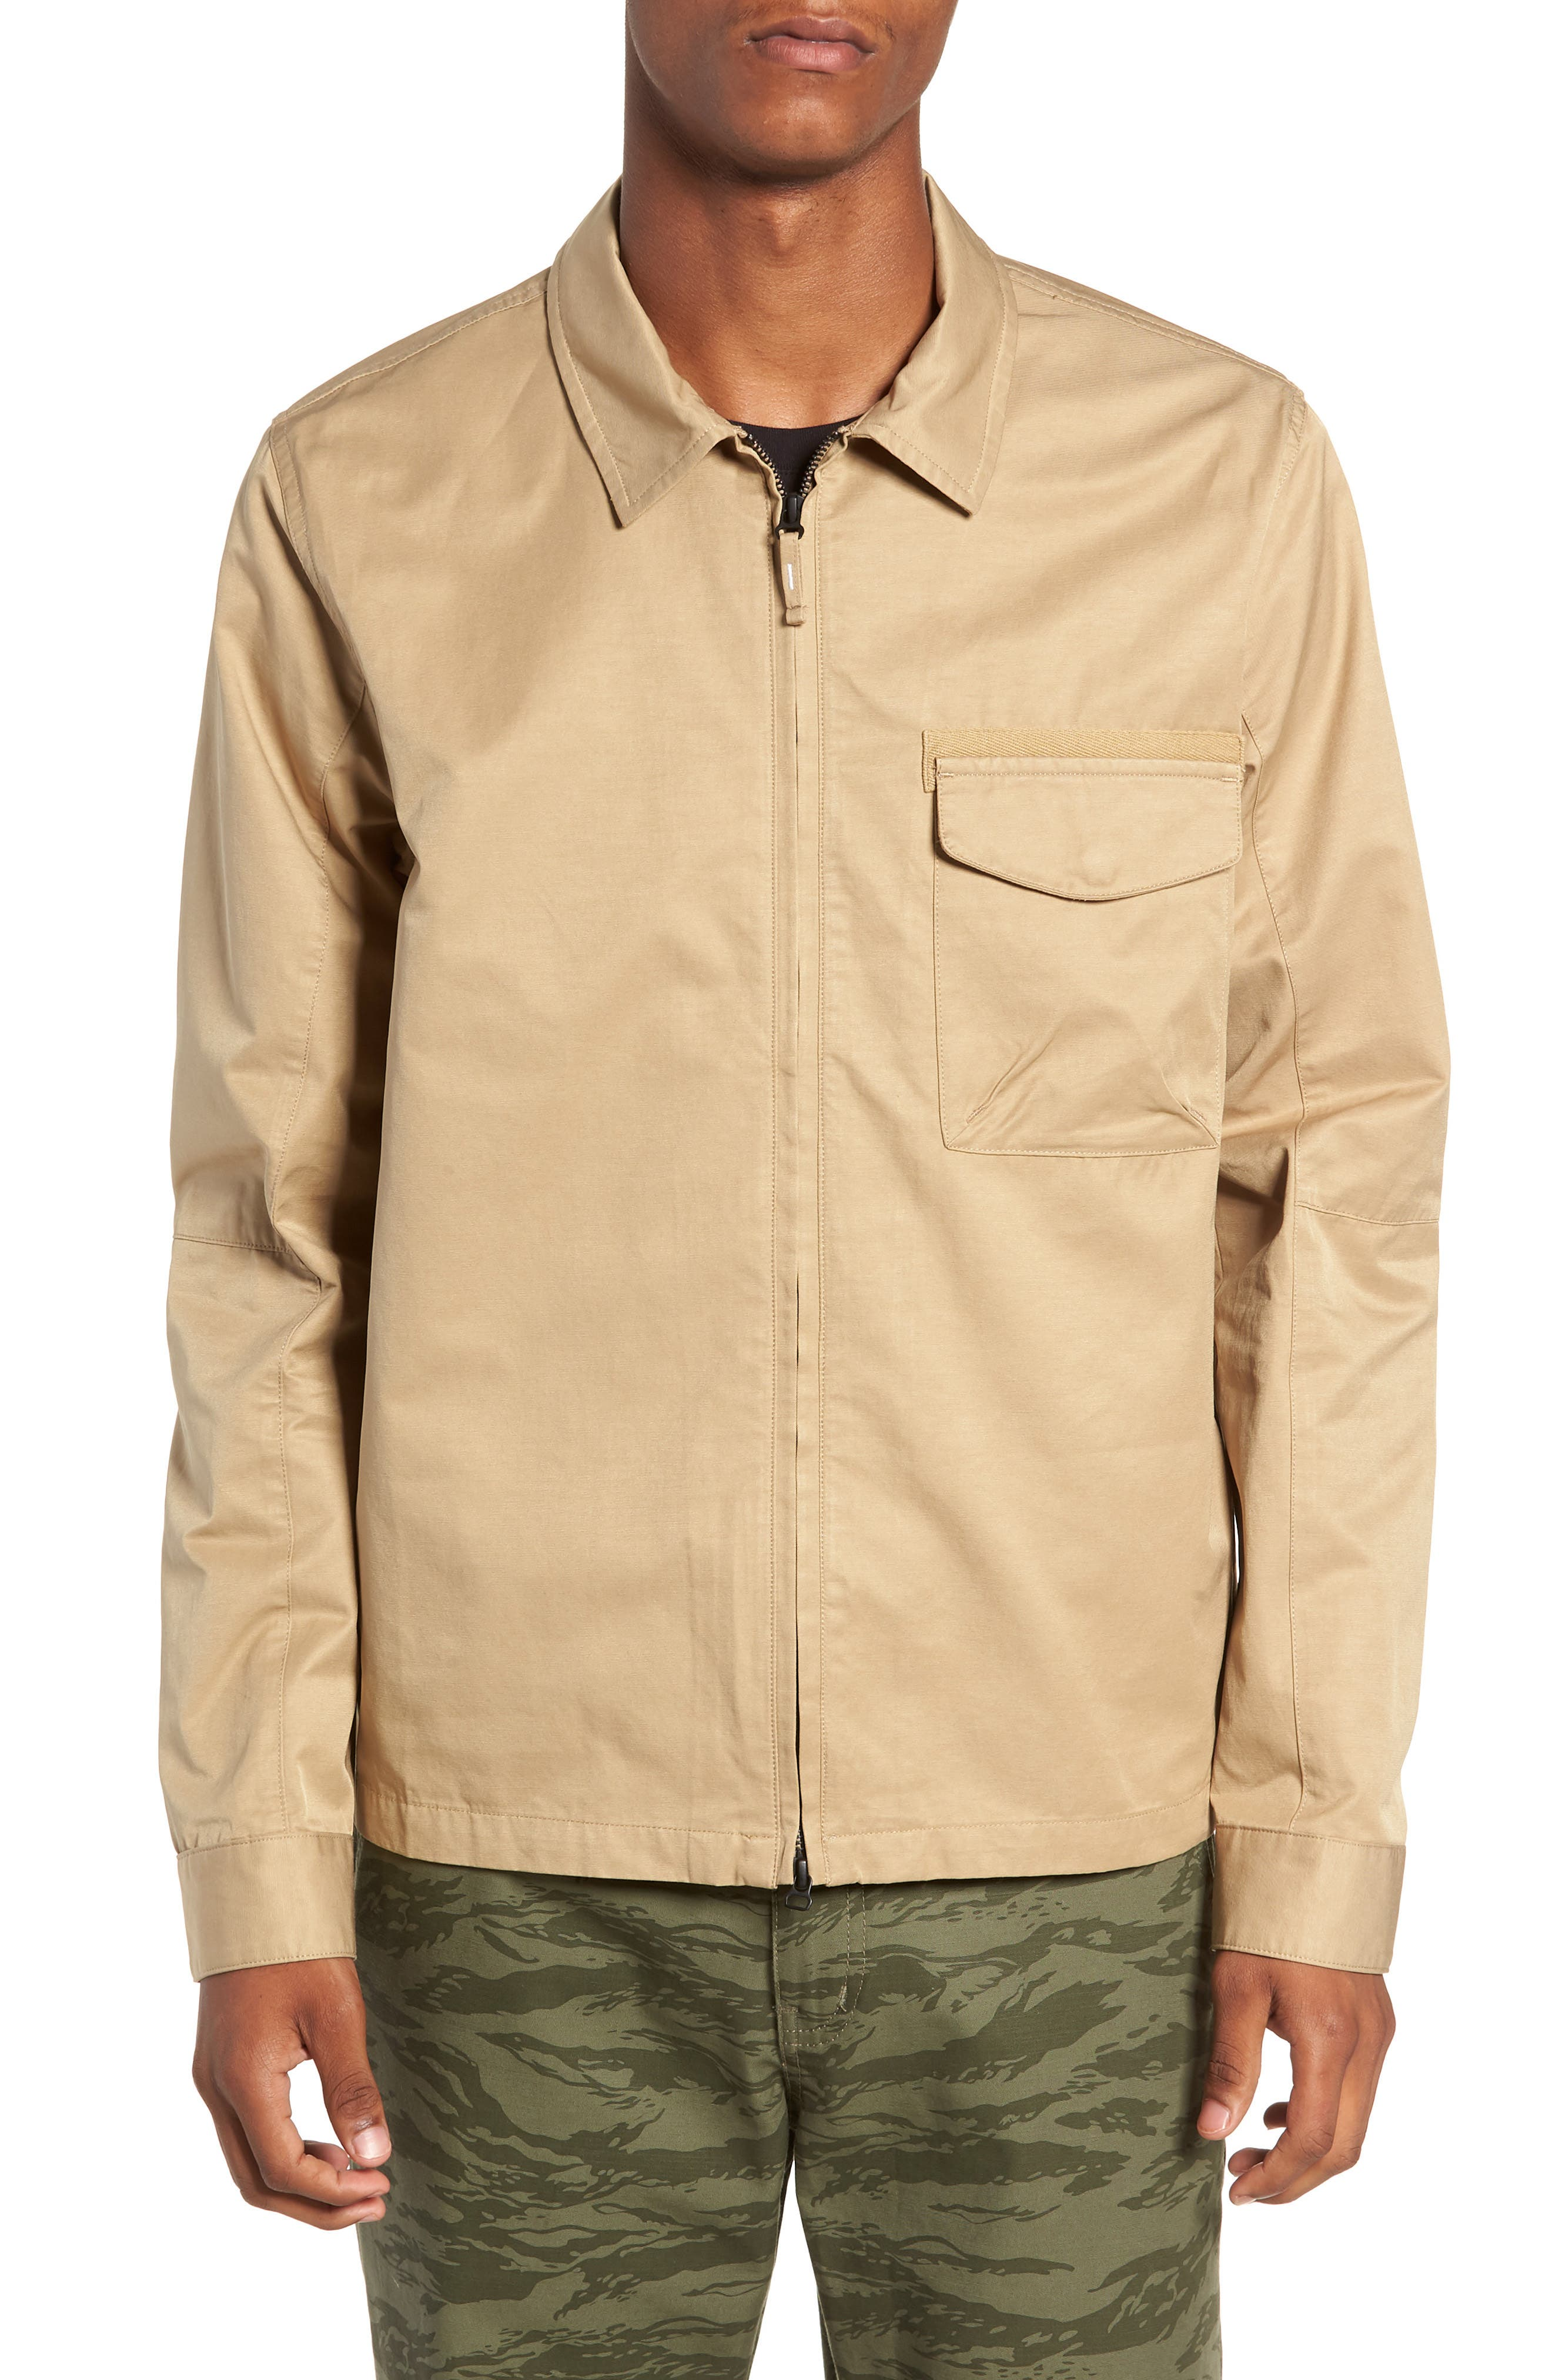 Hale Shirt Jacket,                             Alternate thumbnail 4, color,                             200